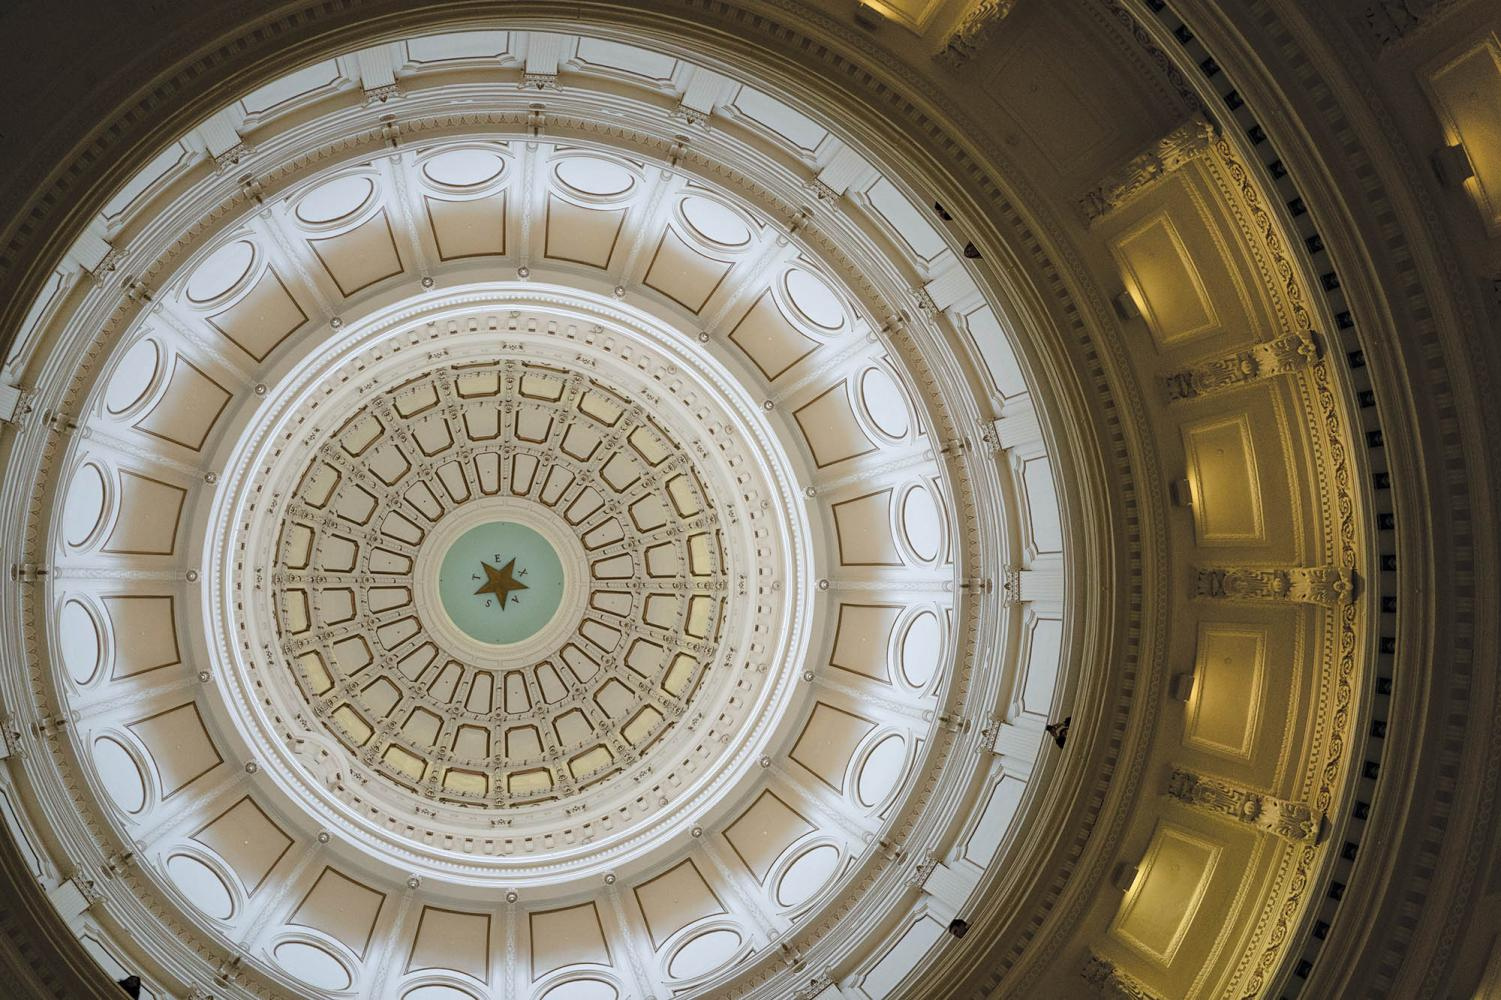 In addition to the regular agenda, the Texas legislature has been tasked by Governor Abbott with addressing special 'emergency' items